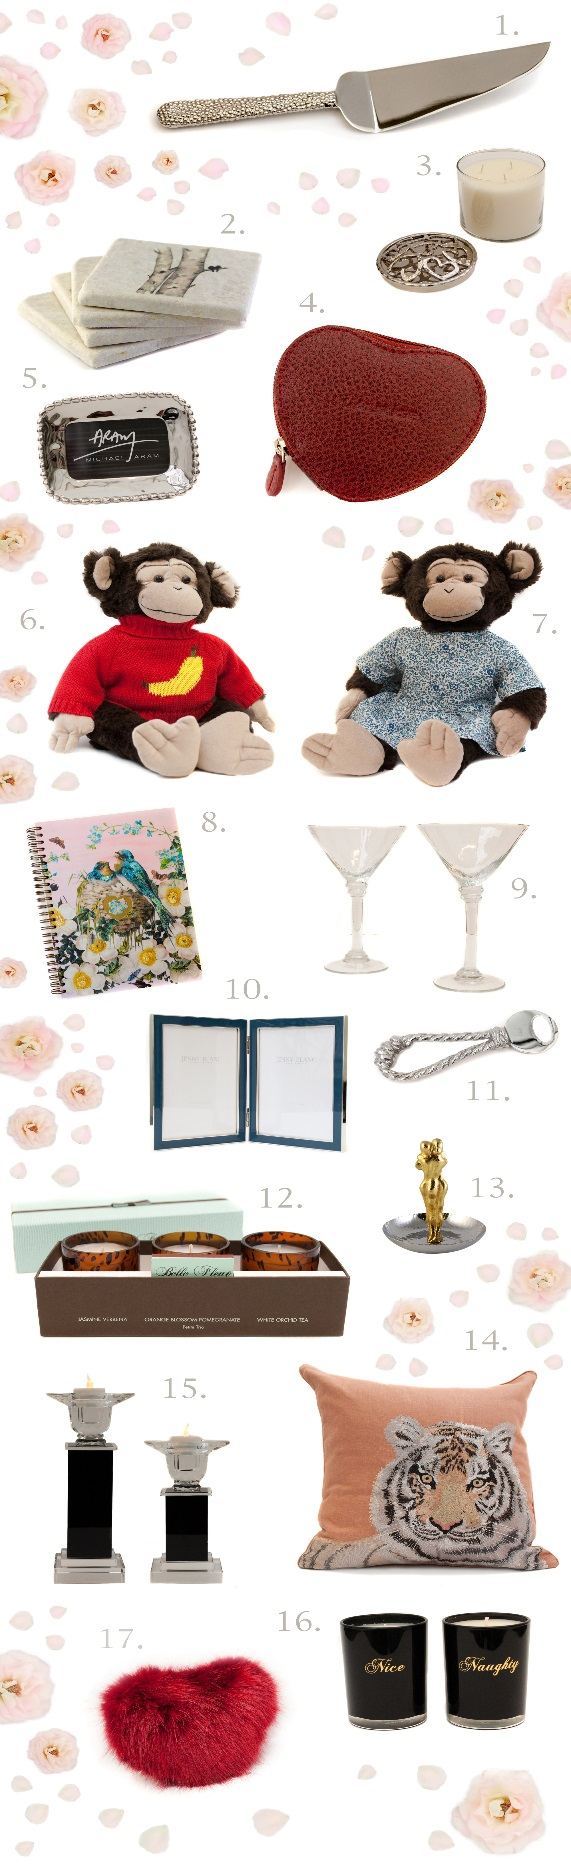 Jenny Blanc Blog - 17 Perfect Presents for Valentines Day